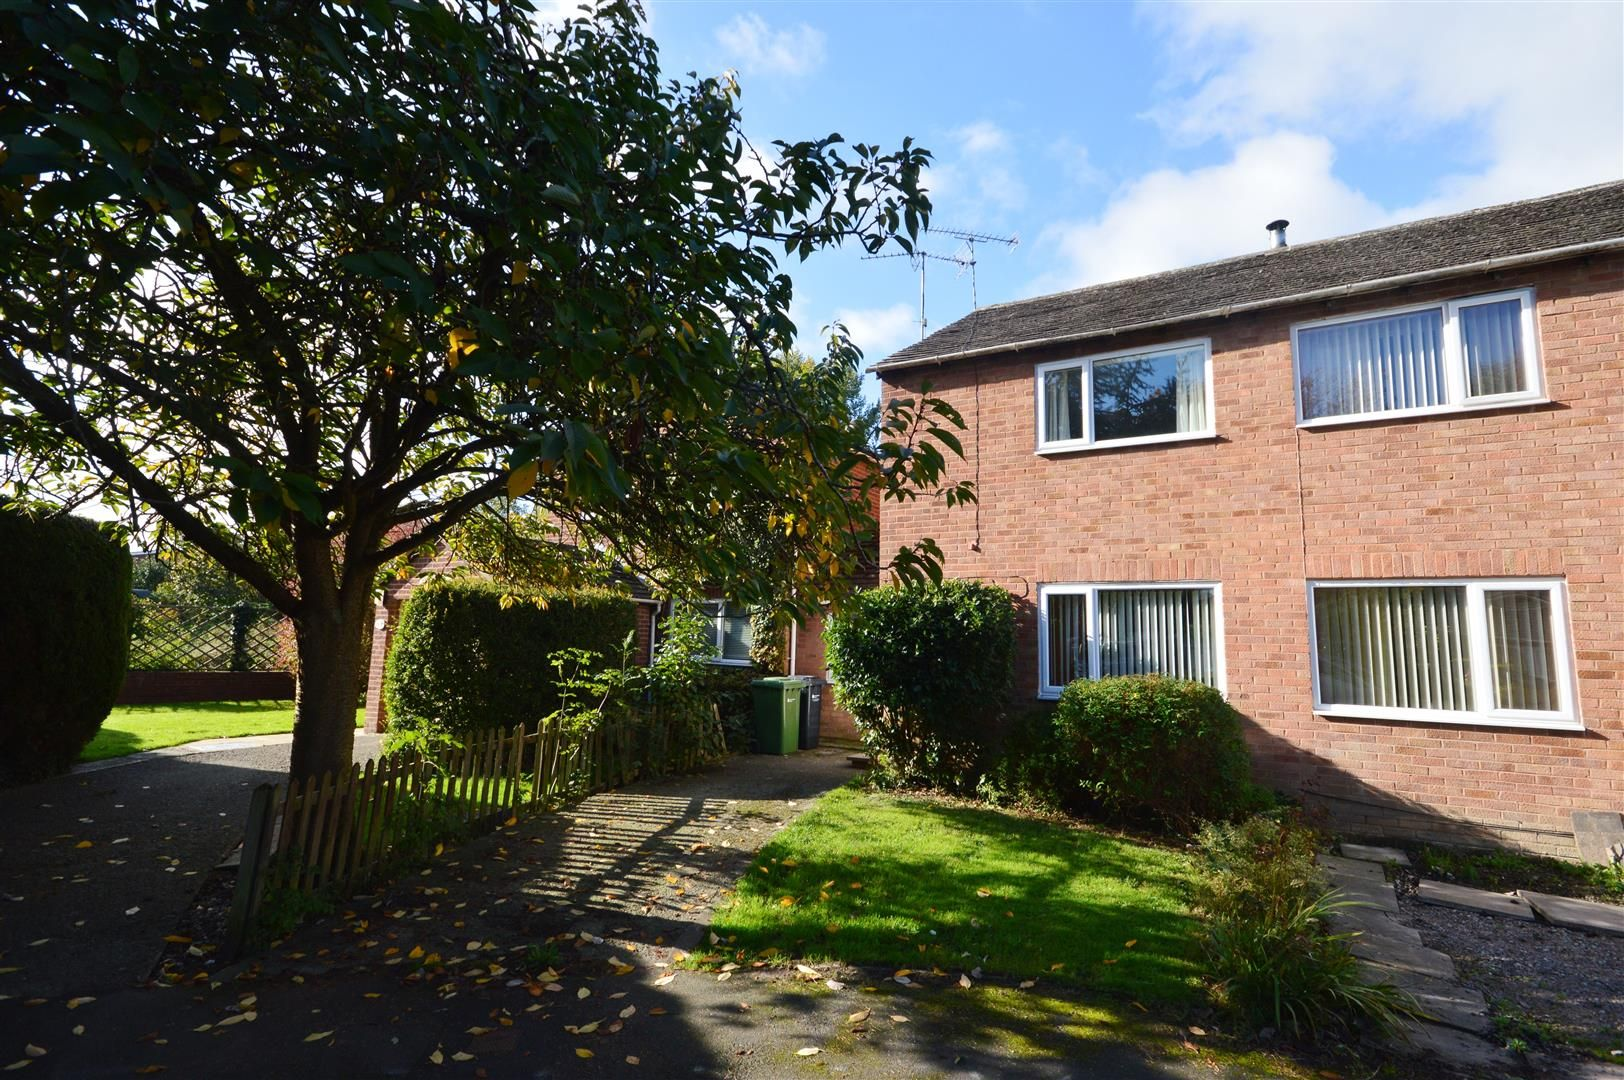 3 bed semi-detached to rent in Leominster 1